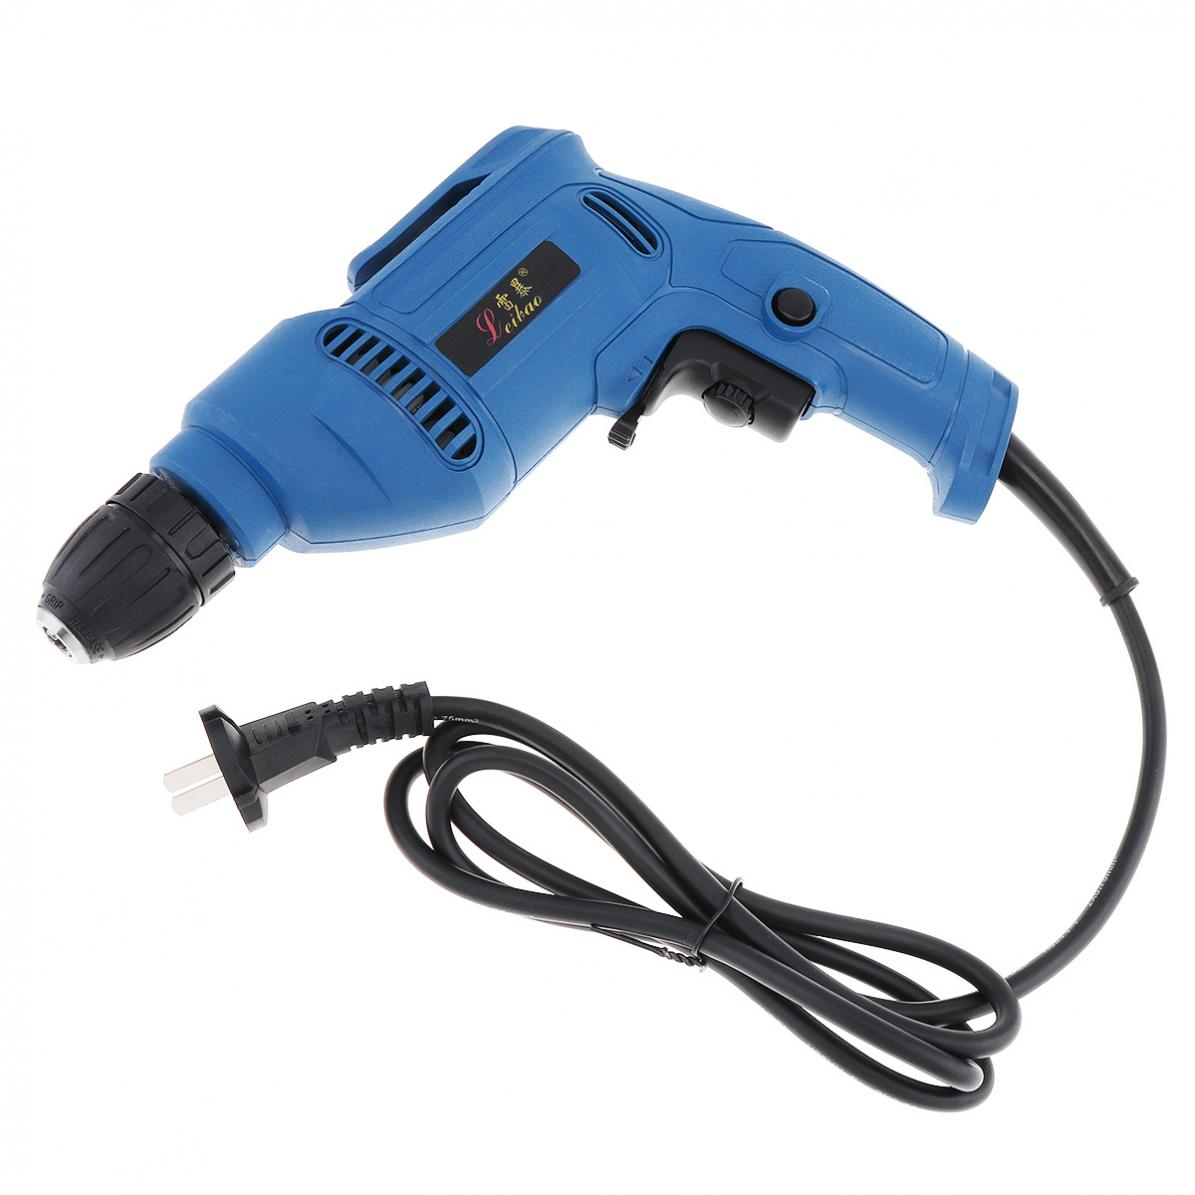 220V-600W-Handheld-Electric-Impact-Wrench-Drill-Screwdriver-w-10mm-Drill-Chuck miniature 2